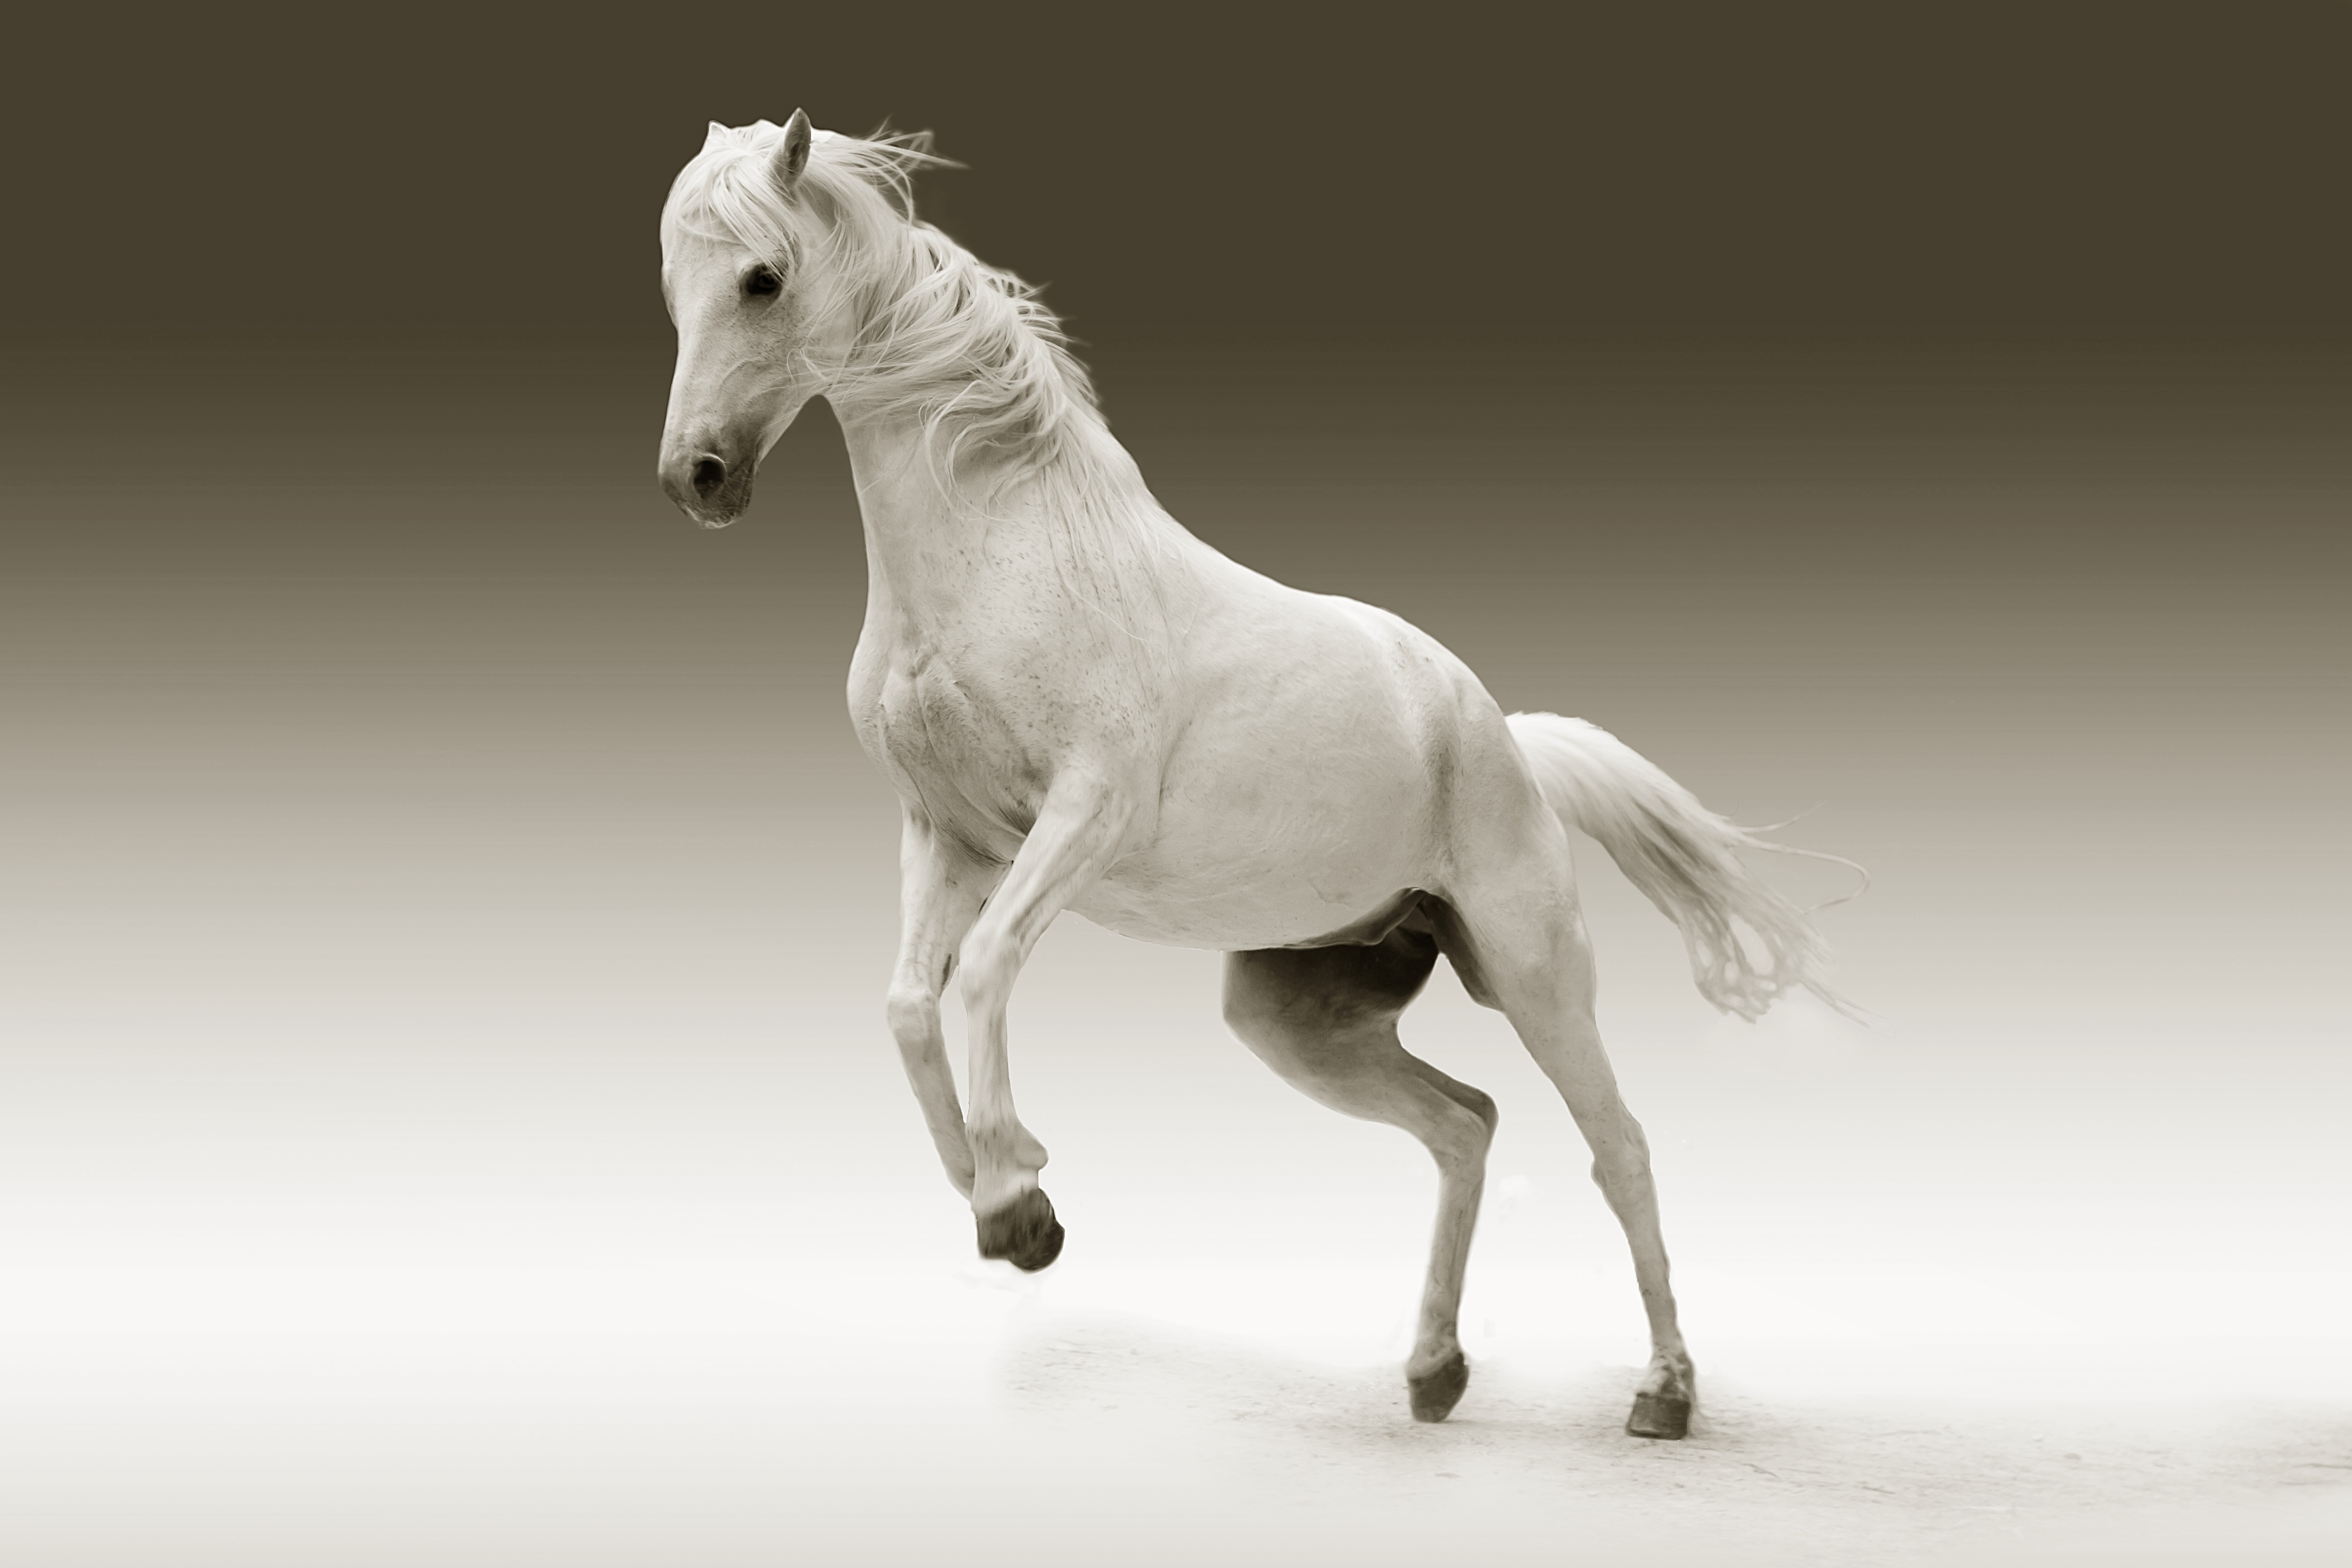 Leaping White Horse Illustration All Animal 853576 Hd Wallpaper Backgrounds Download